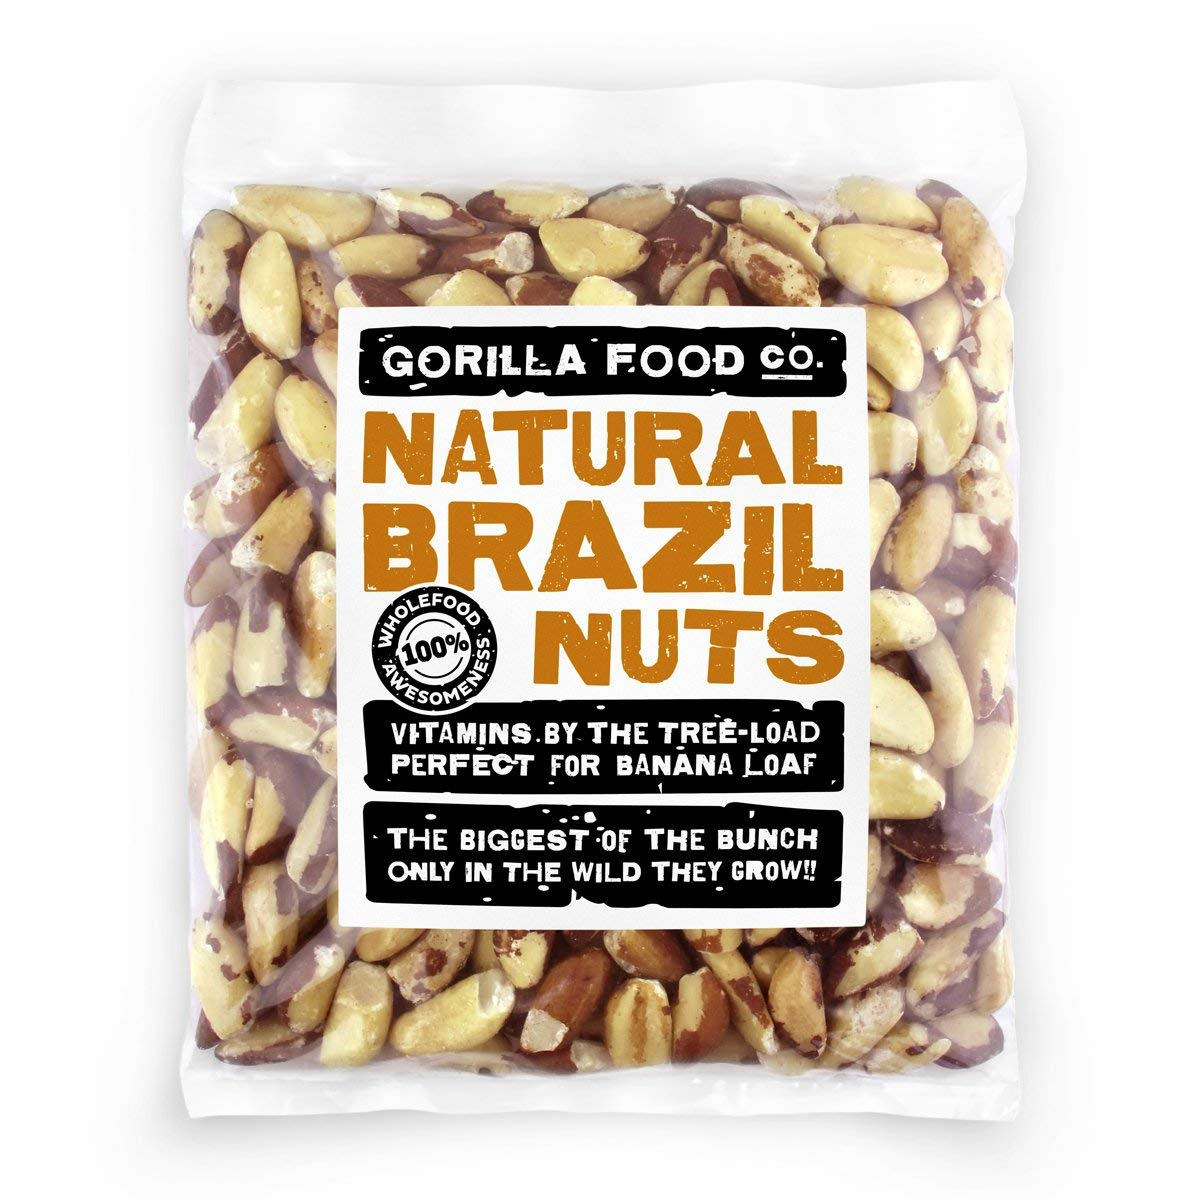 Premium Brazil Nuts Raw Whole - 16oz Pack by Gorilla Food Co